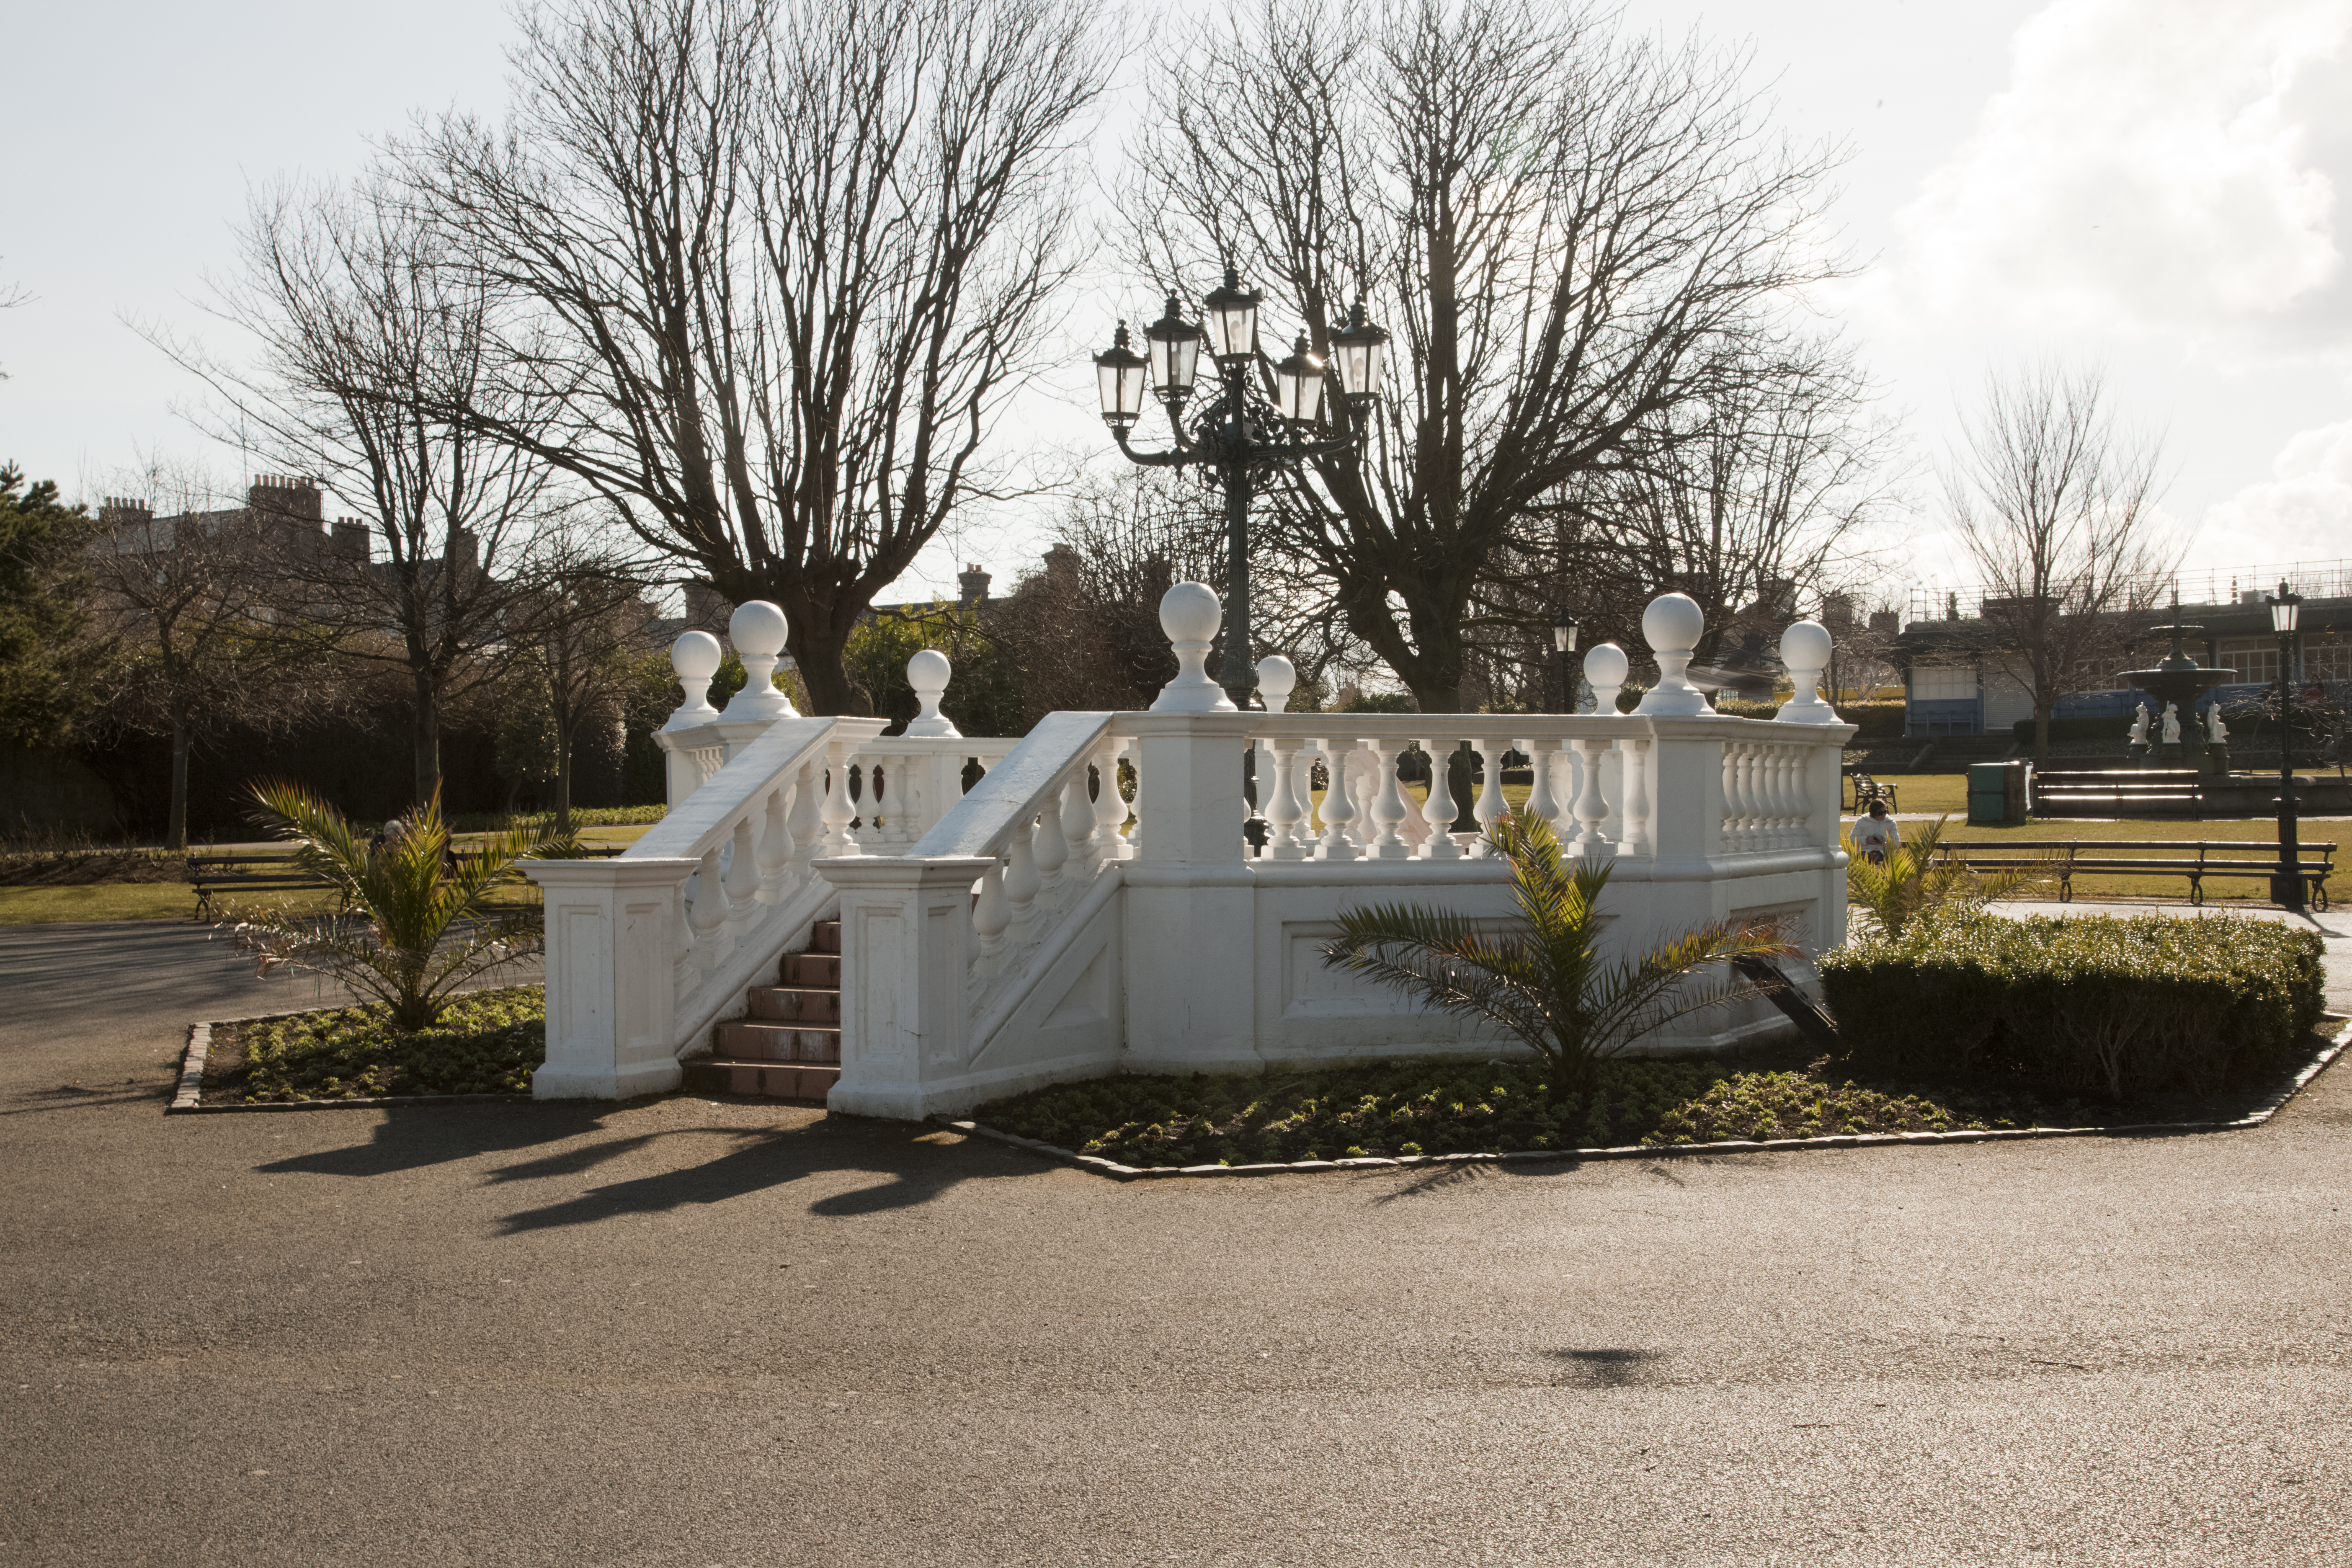 People's Park in Dún Laoghaire